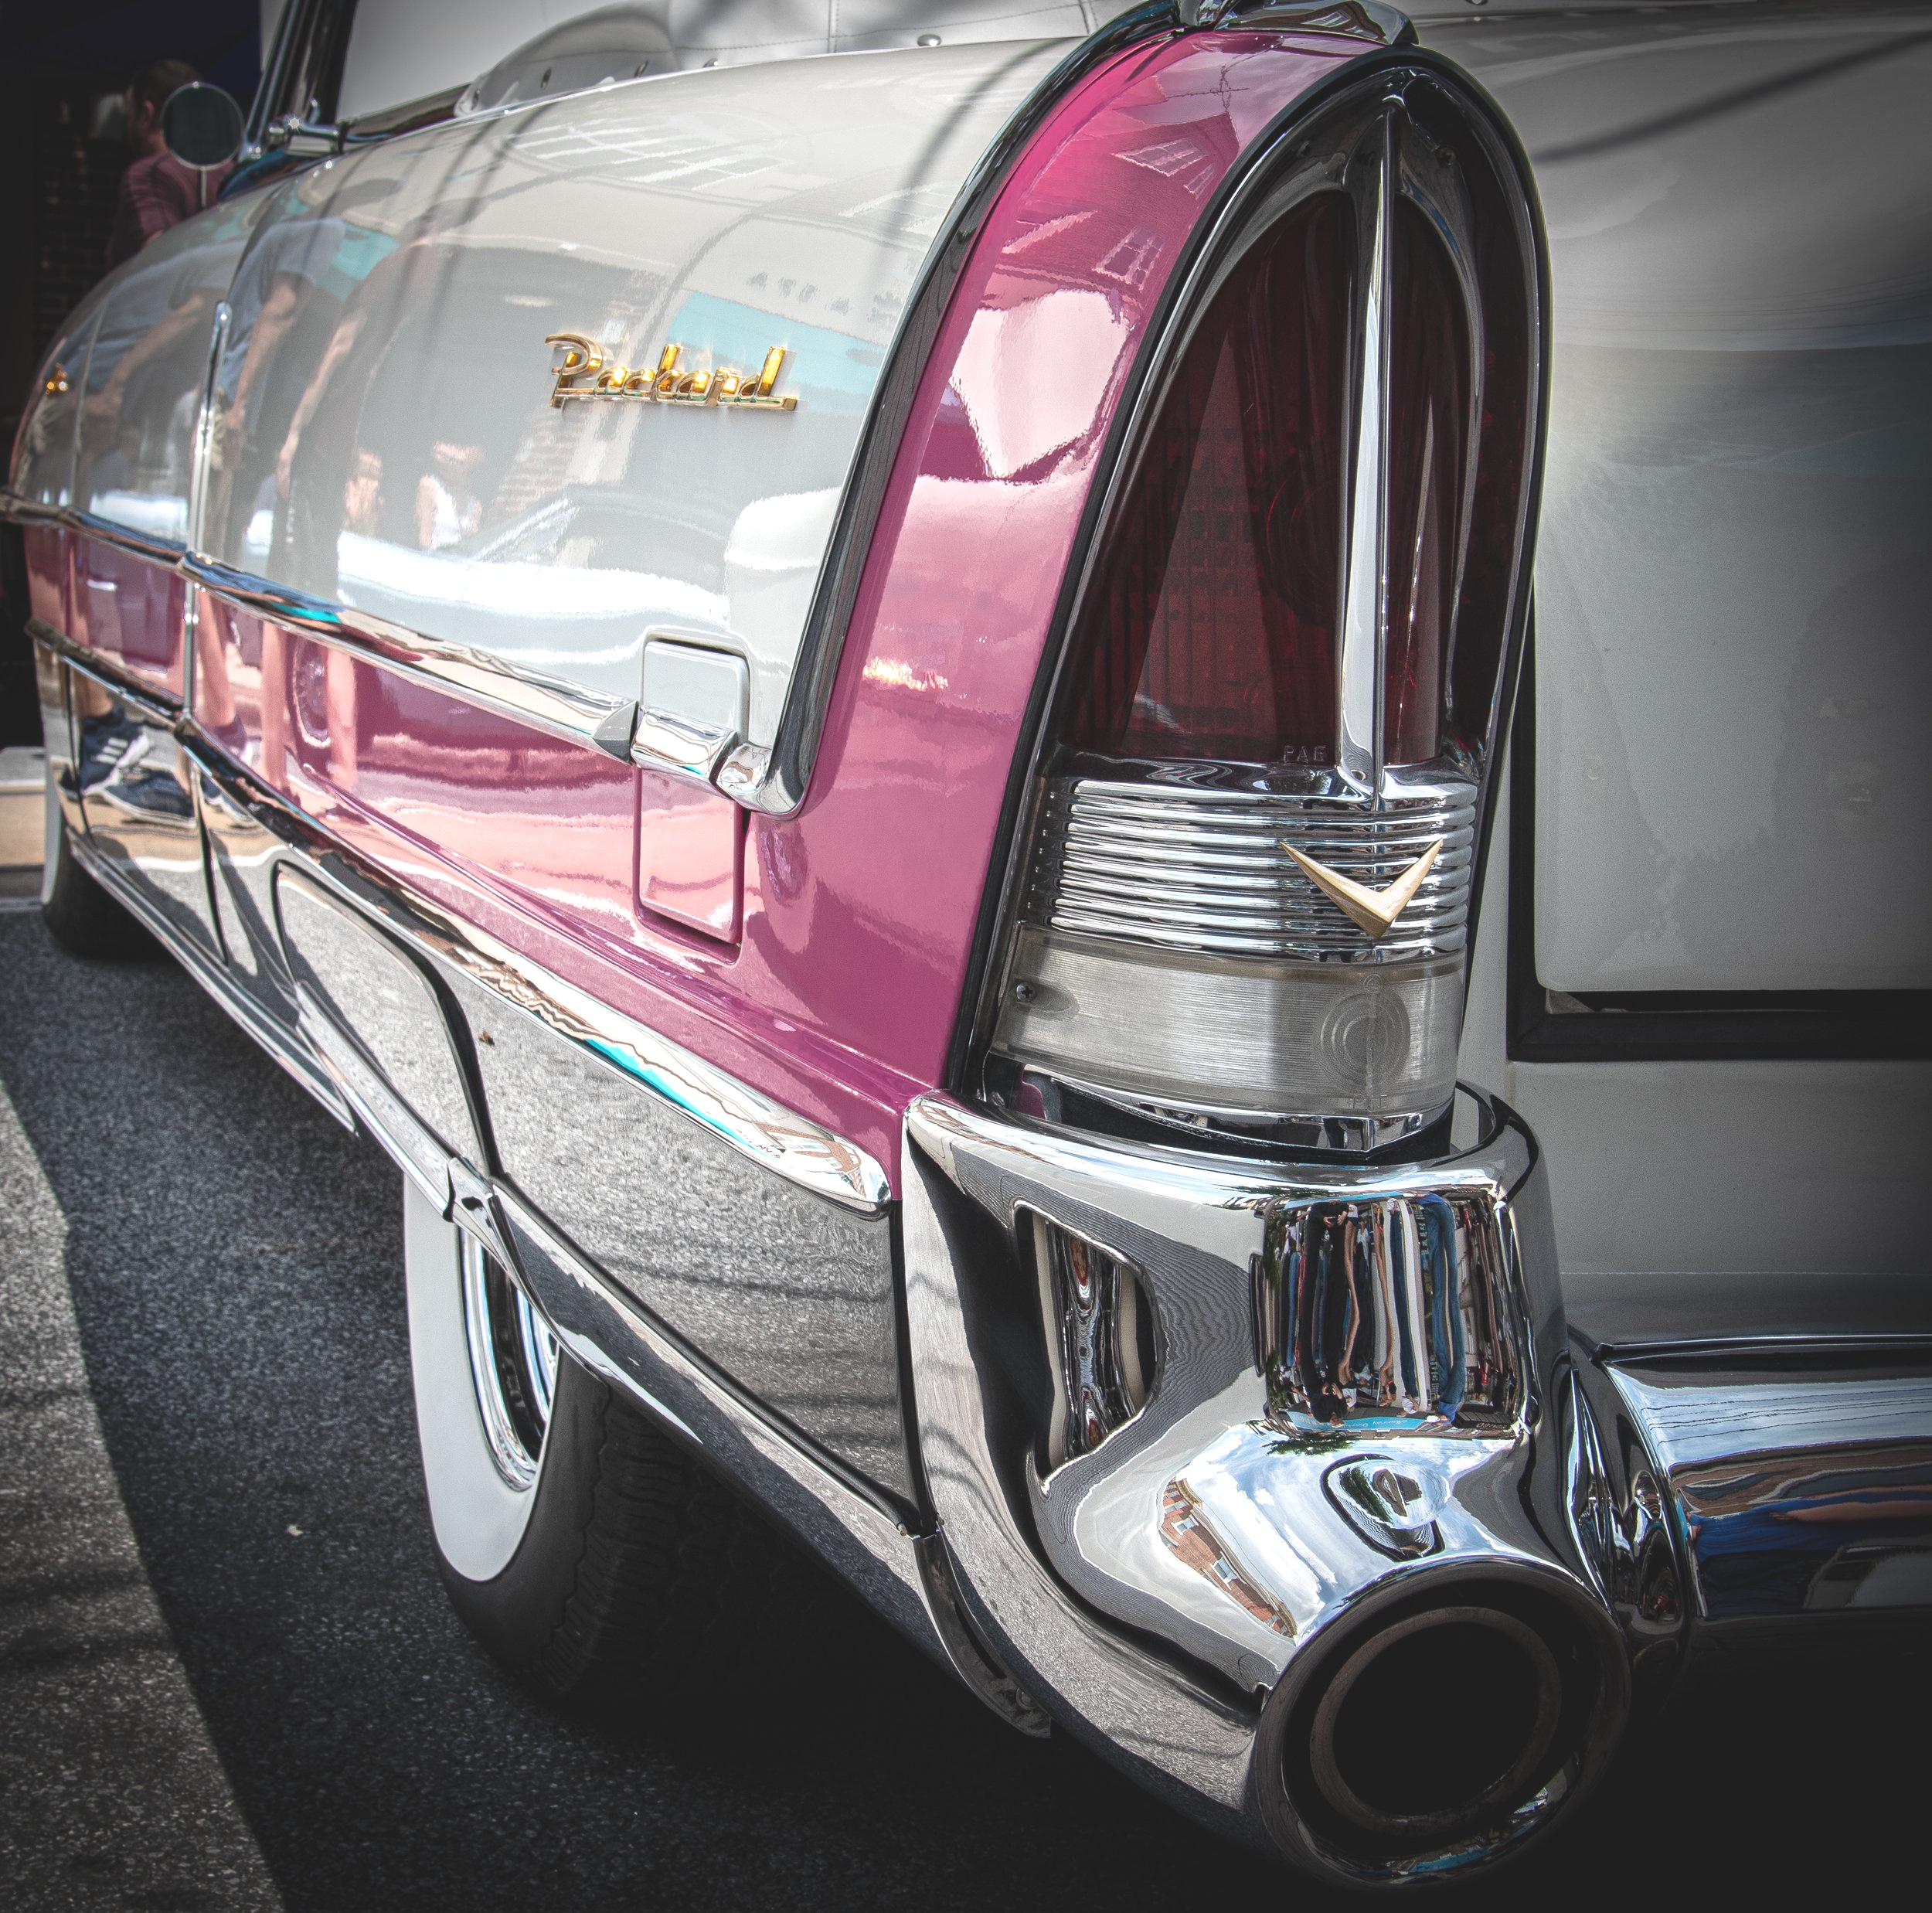 Packard in white and pink